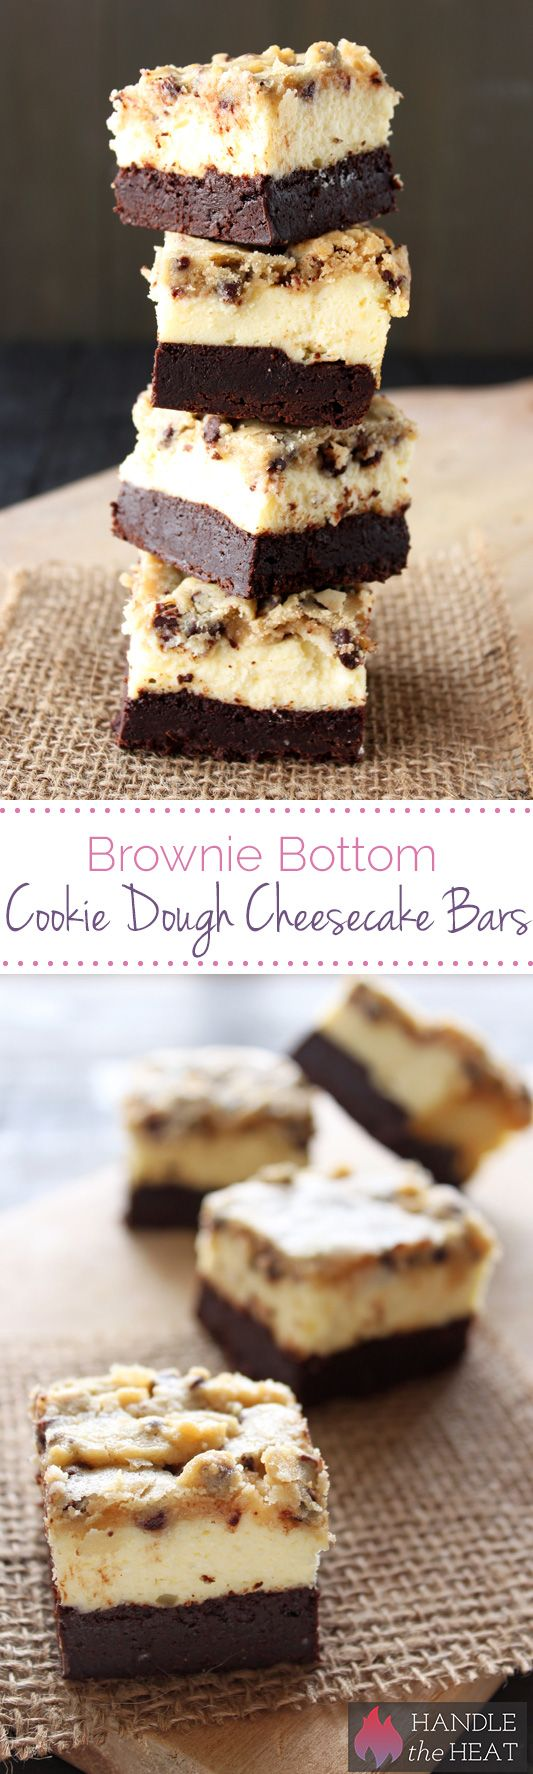 Brownie Bottom Cookie Dough Cheesecake Bars - OUTRAGEOUS!   http://www.handletheheat.com/2013/11/brownie-bottom-cookie-dough-cheesecake-bars.html